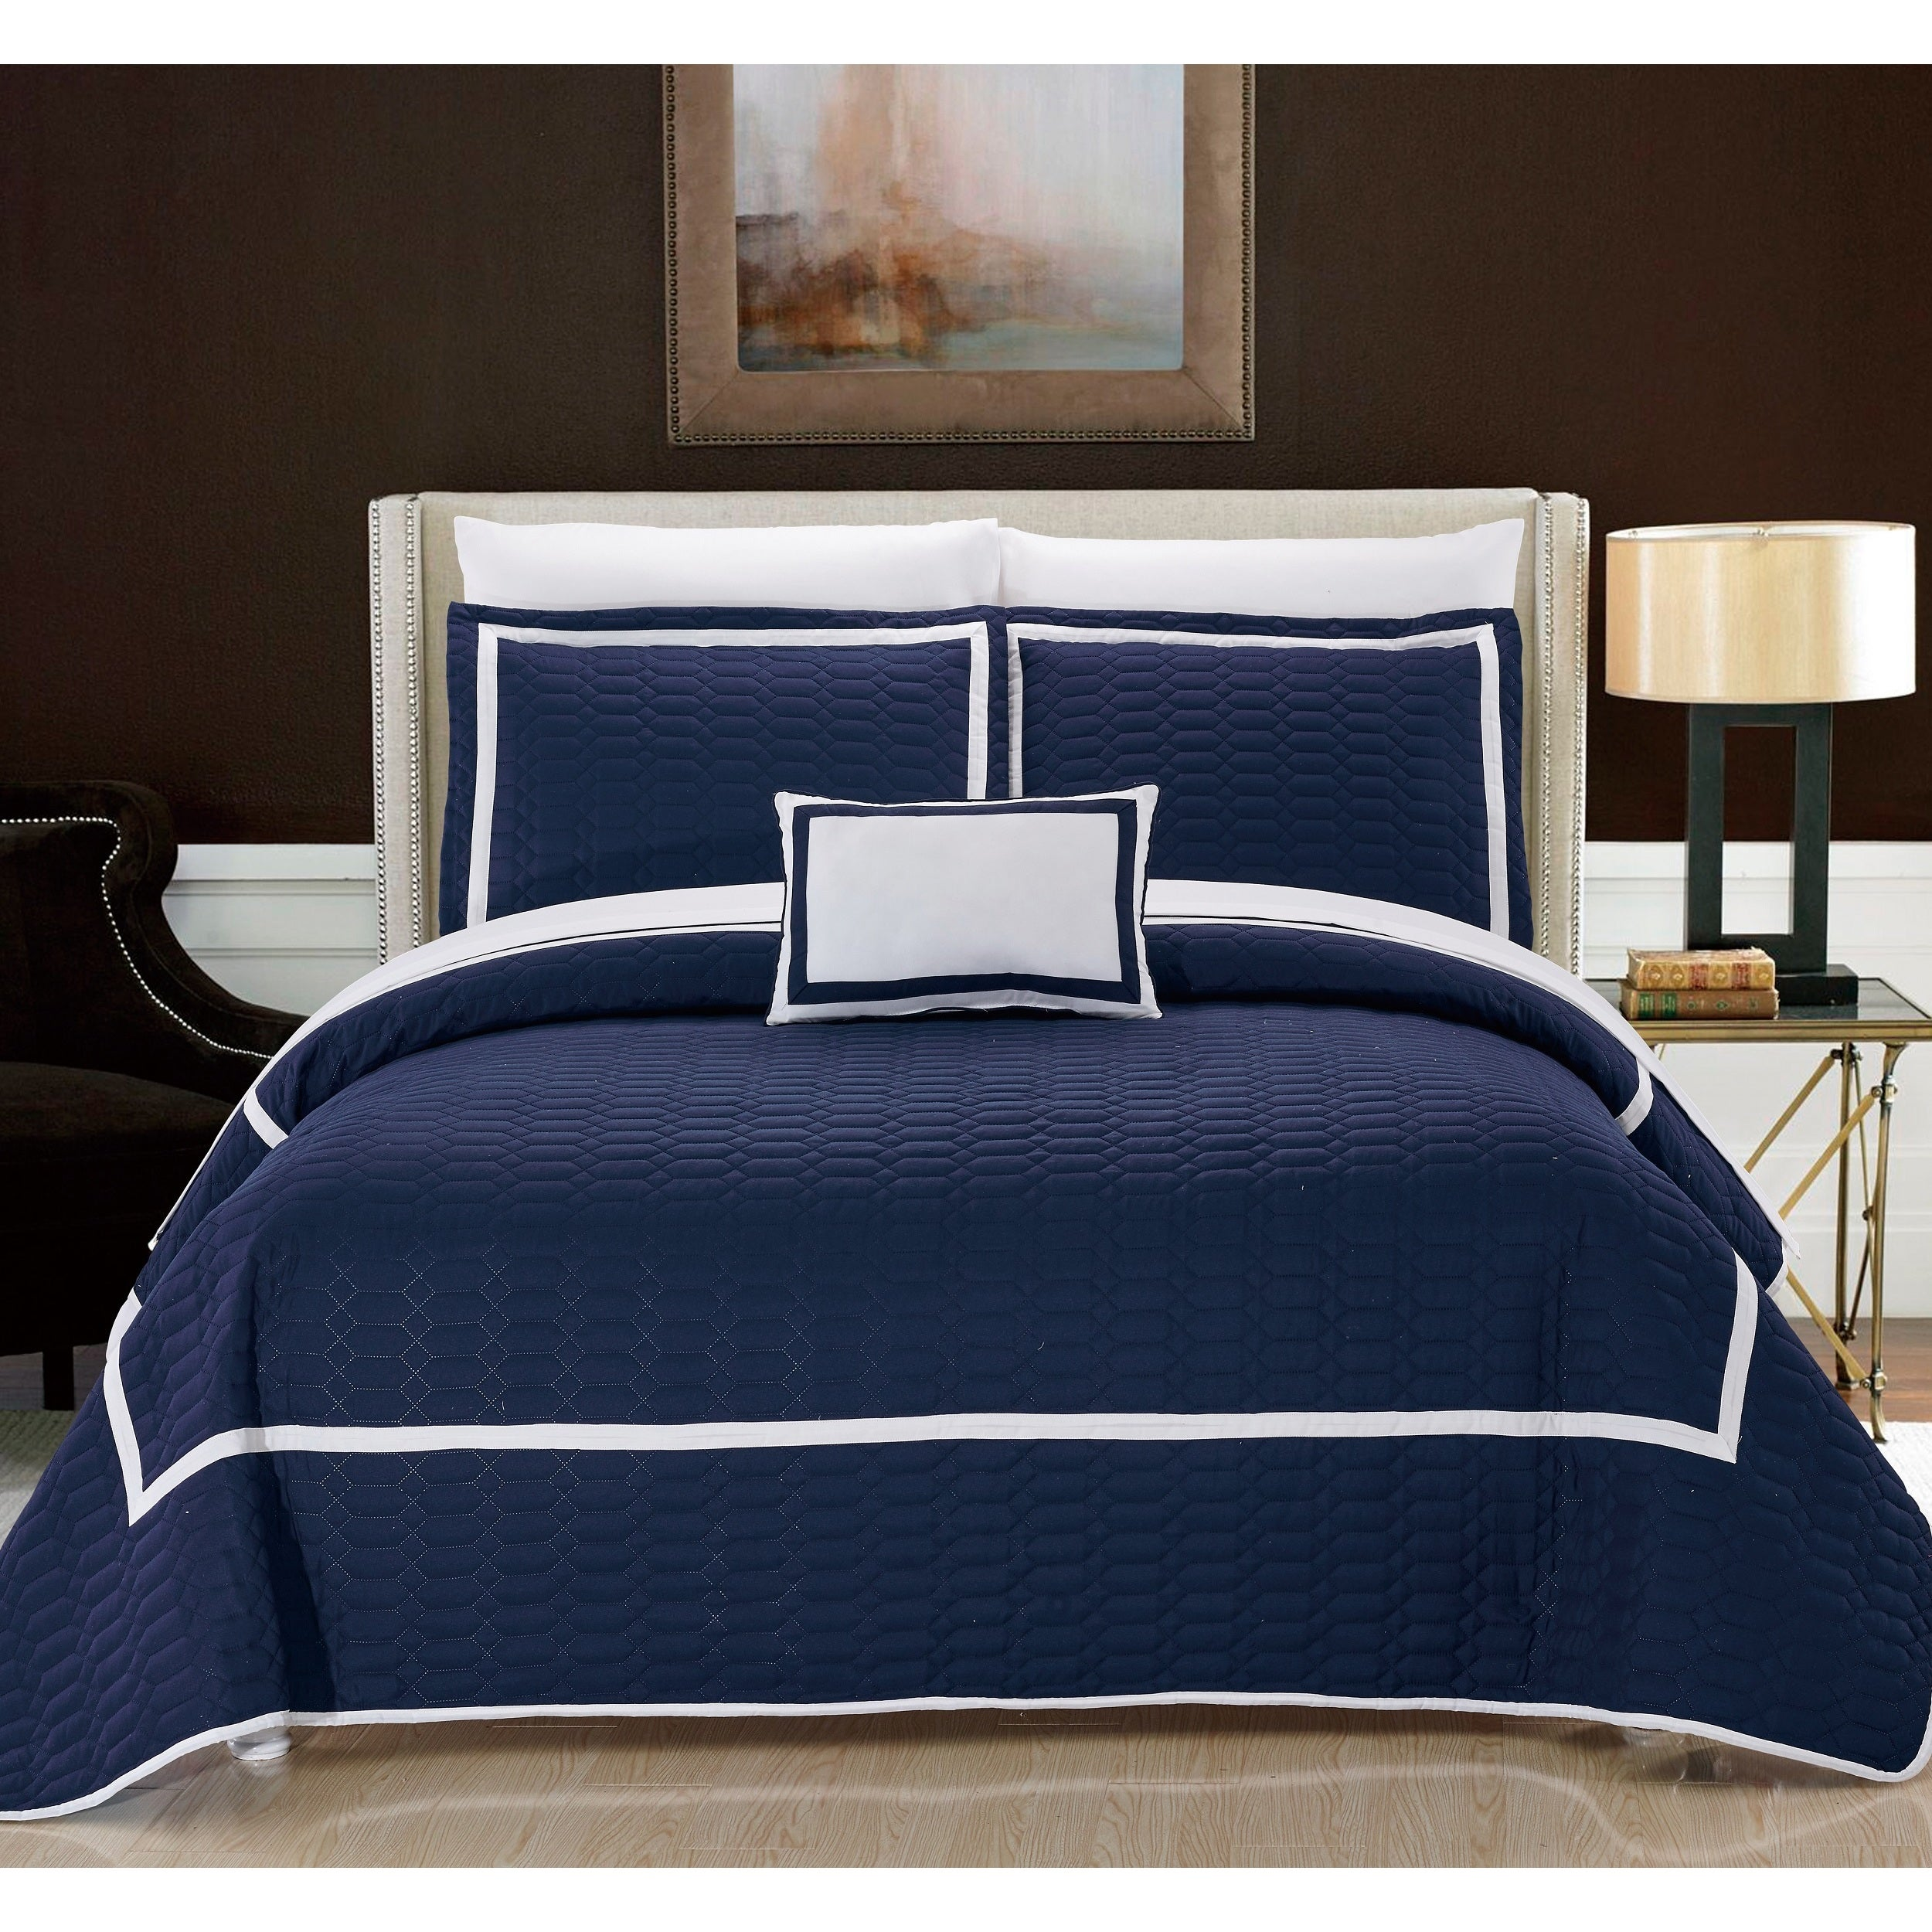 Havenside Home Cocoa Beach Navy Quilt 8-piece Set